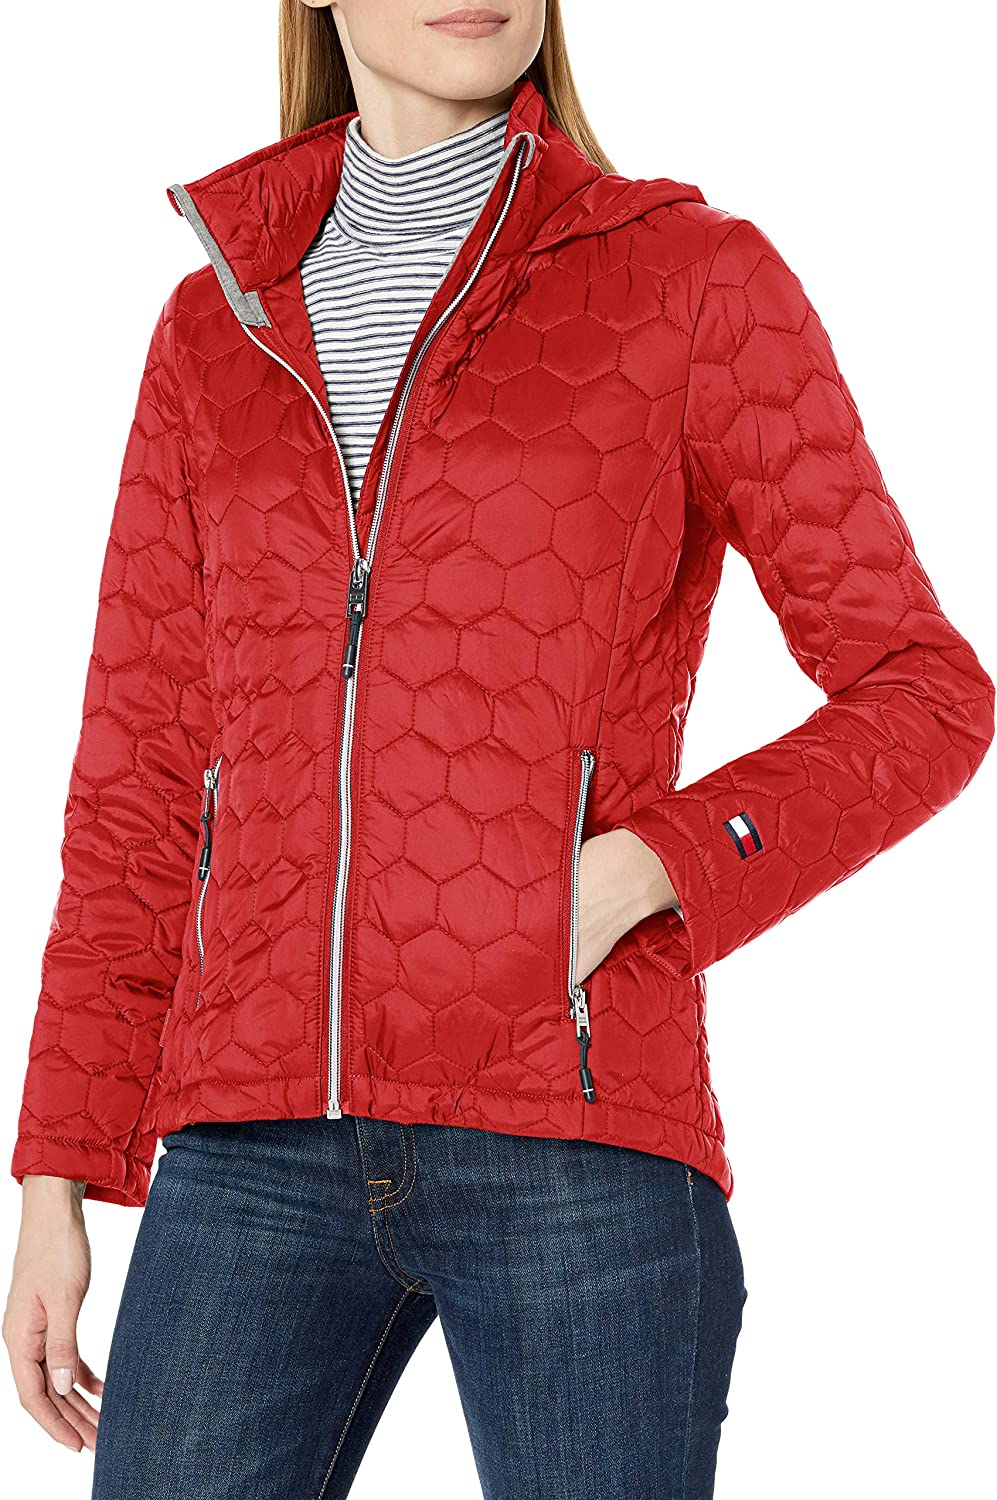 Tommy Hilfiger Women's Hooded Quilted Packable Jacket